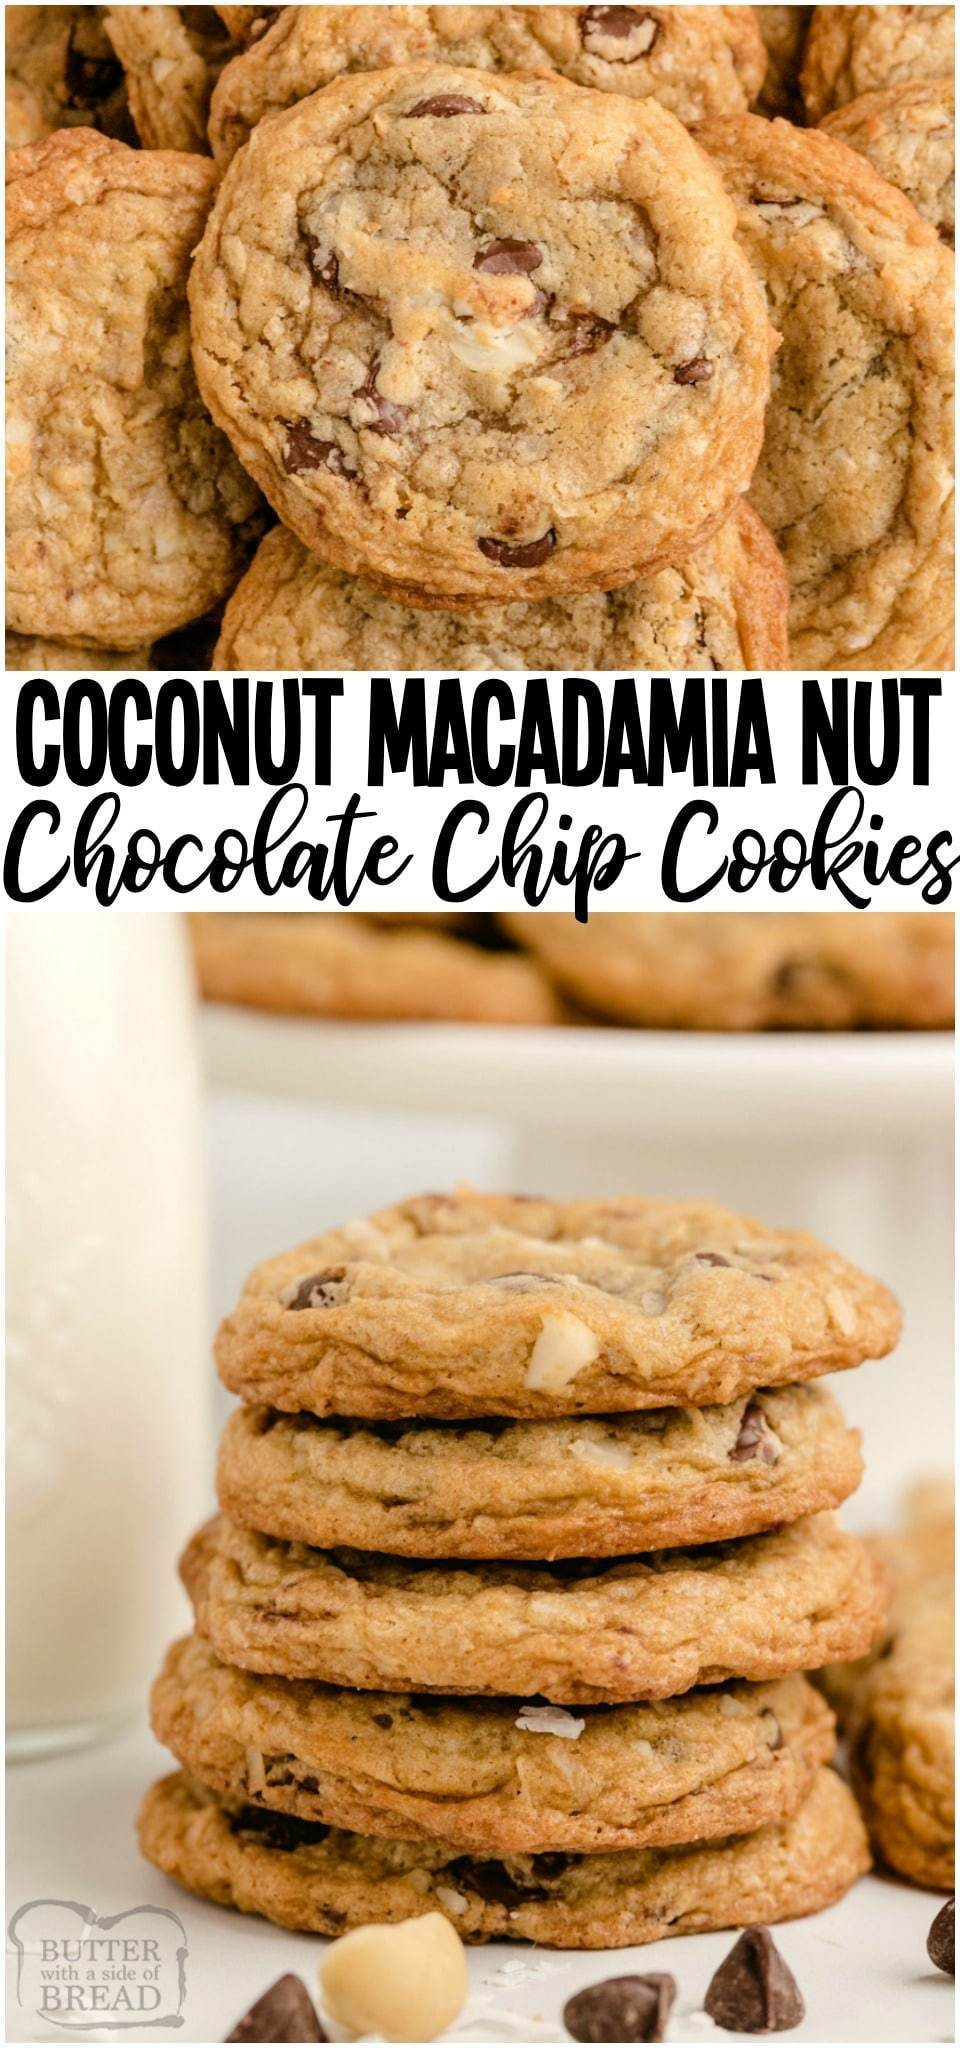 Coconut Macadamia Nut Cookies loaded with sweet coconut, chocolate chips & chopped macadamia nuts! Over the top chocolate chip cookie recipe with fantastic flavor, buttery crisp edges and a soft & chewy center.